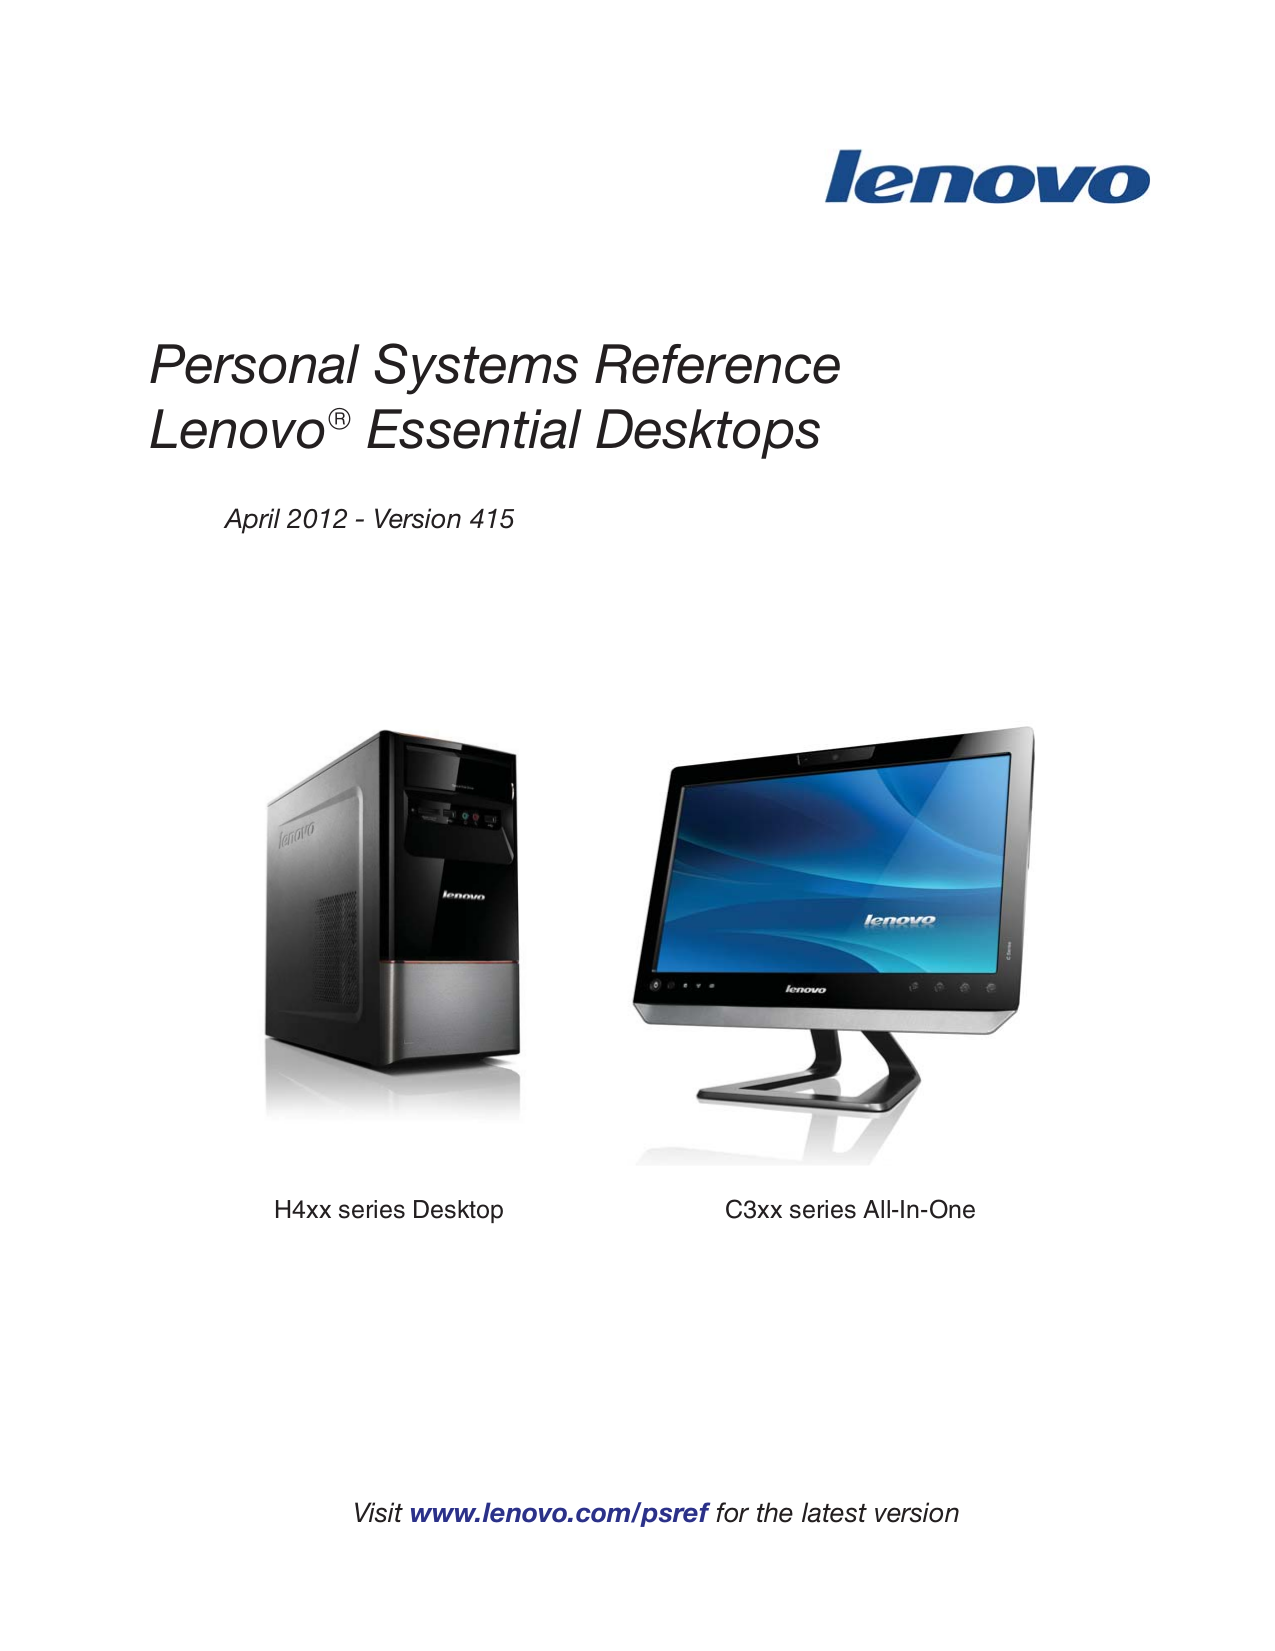 pdf for Lenovo Desktop IdeaCentre H420 7752 manual